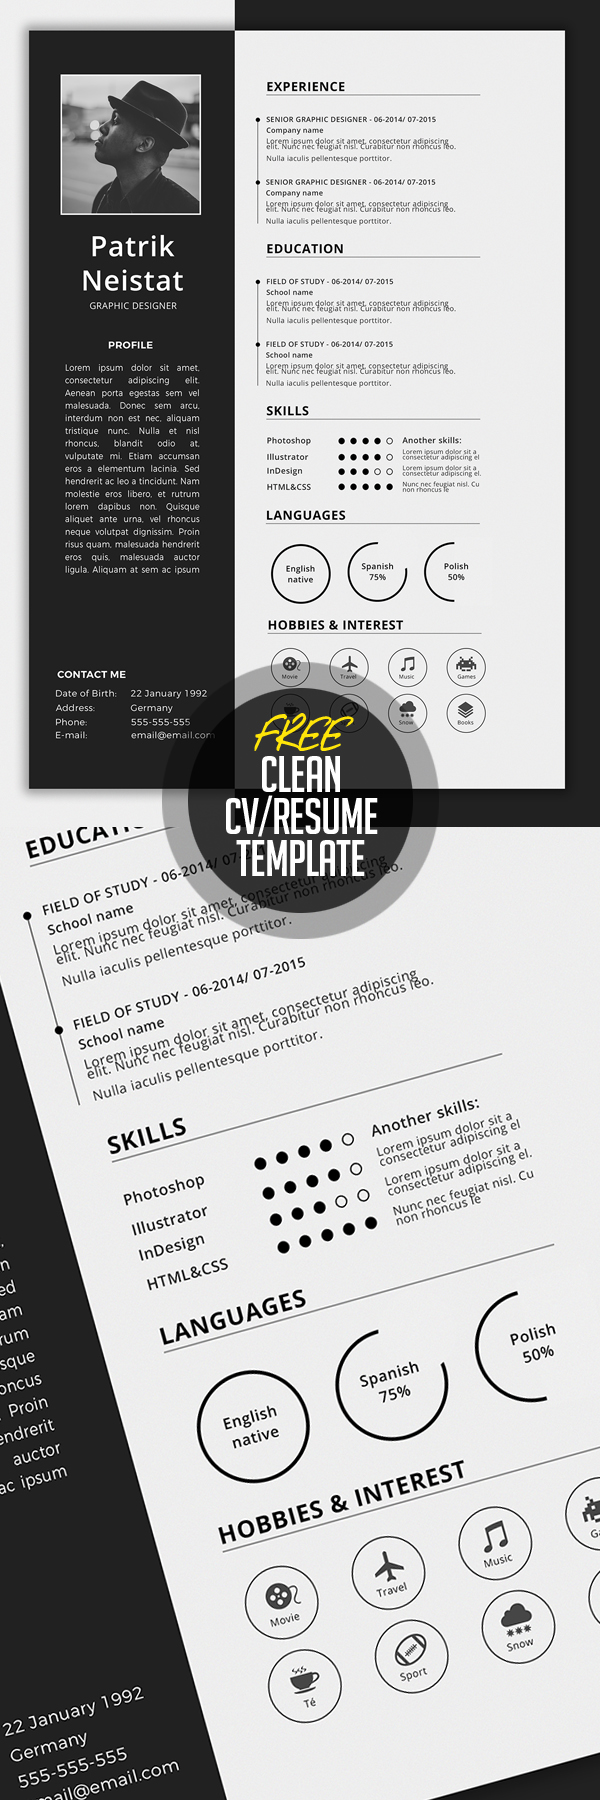 Simple CV/Resume Template Free Download  Simple Resume Template Free Download